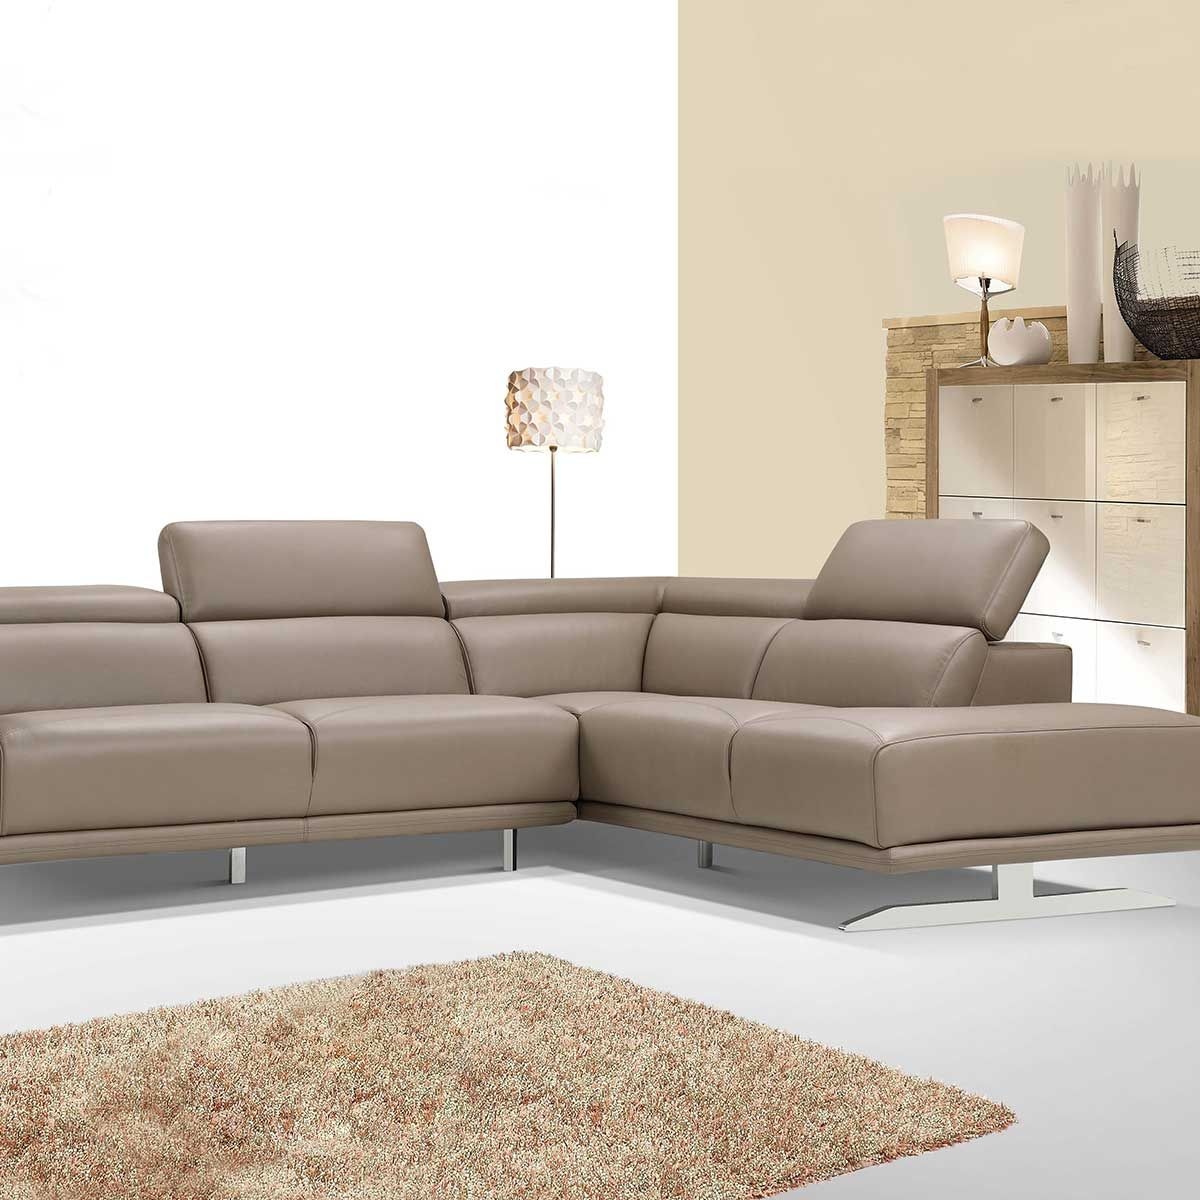 L Shaped Faux Leather Sofa With Left Right Chaise With Adjutsable Head Rest With Stainless Steel Legs In Modern Luxuriou Faux Leather Sofa Sofa Leather Sofa